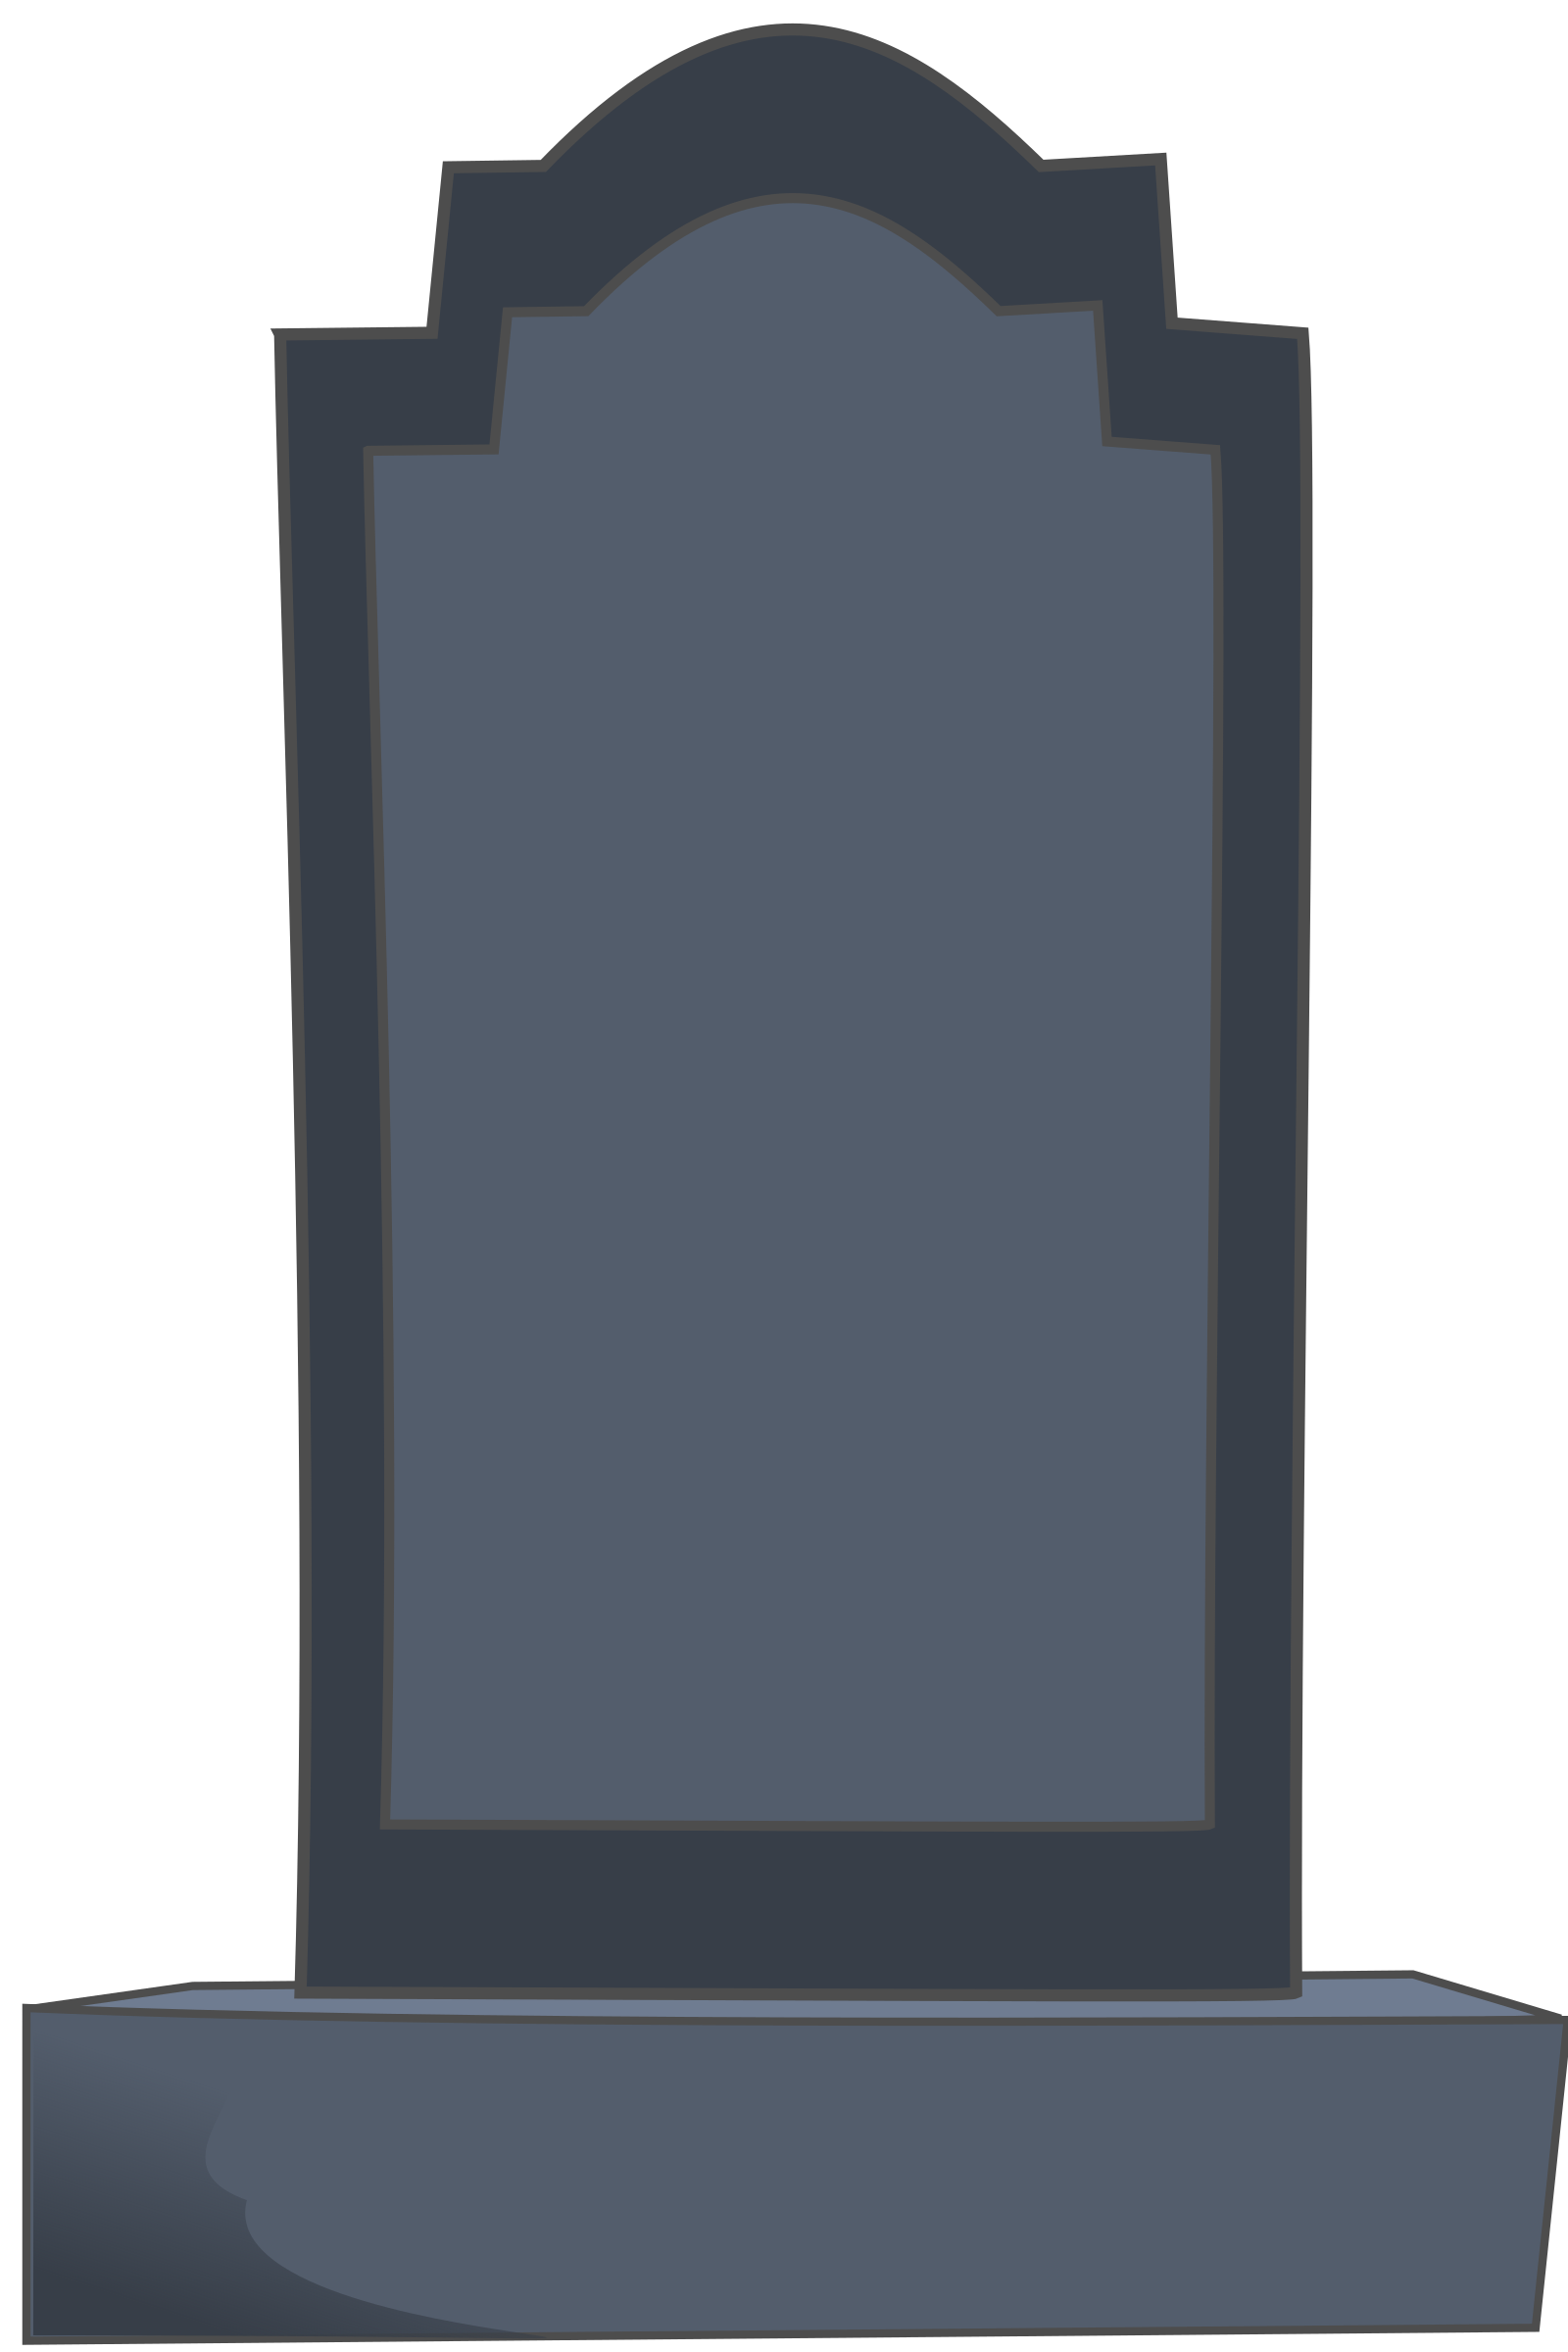 graphic library download Blank gravestone clipart. L pide big image